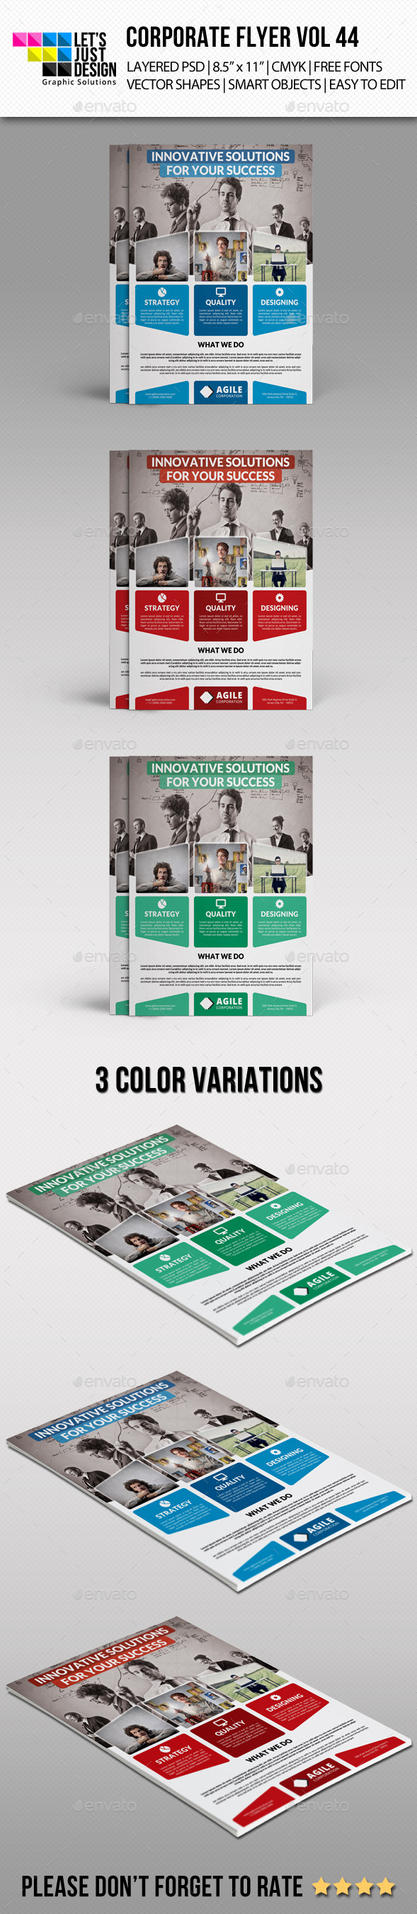 Corporate Flyer Template Vol 44 by jasonmendes